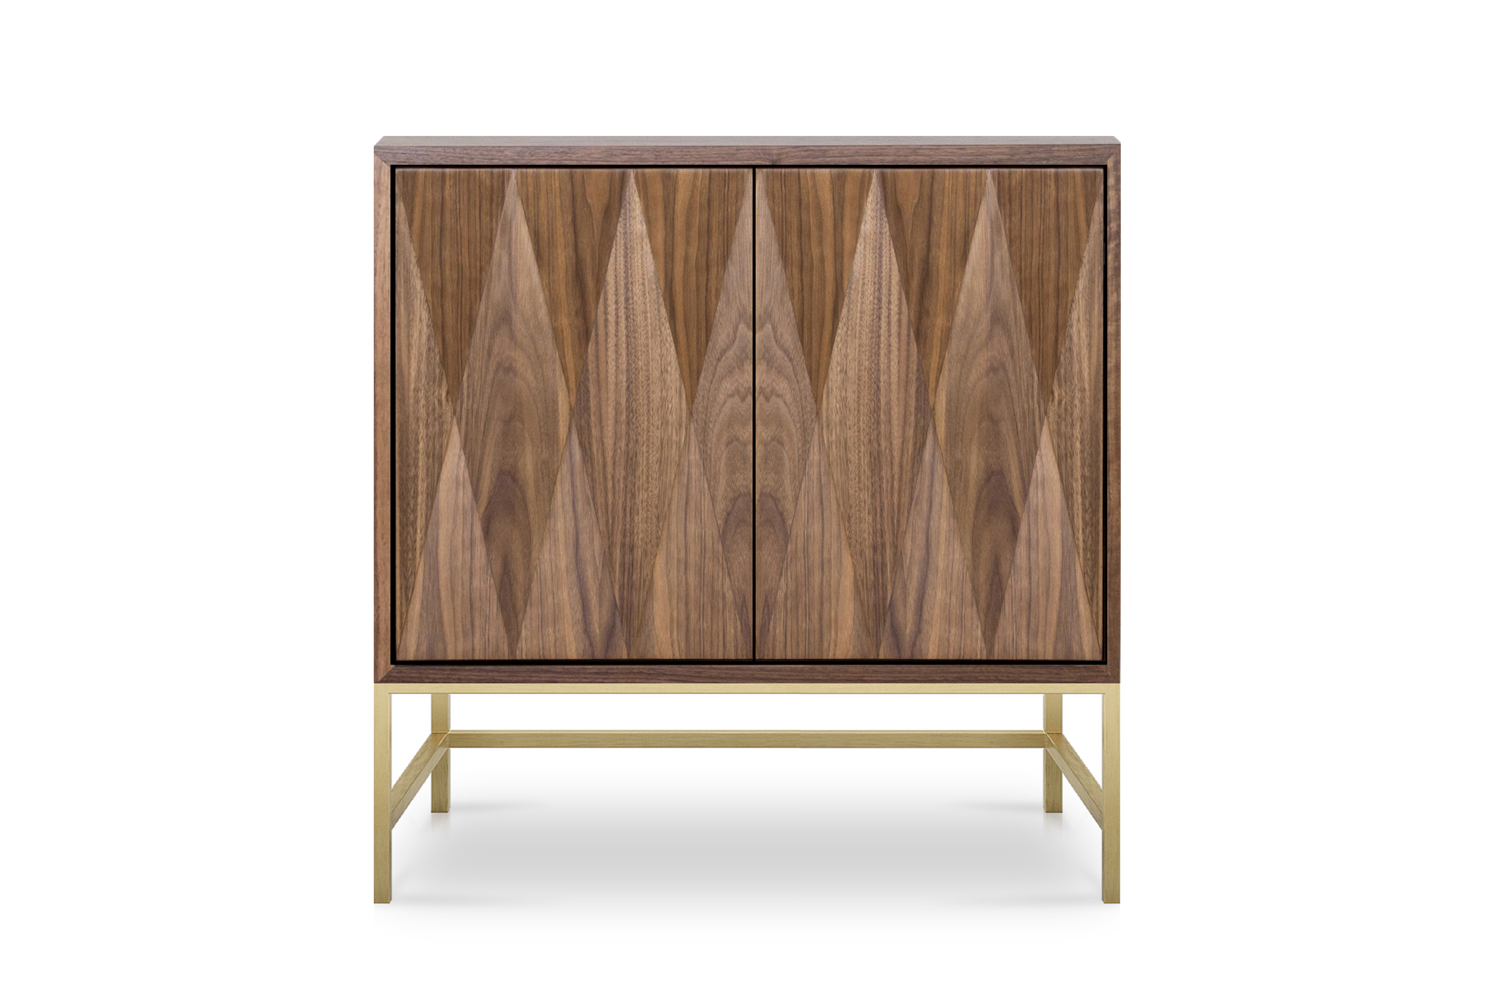 diamond-door-single-sideboard-01.jpg